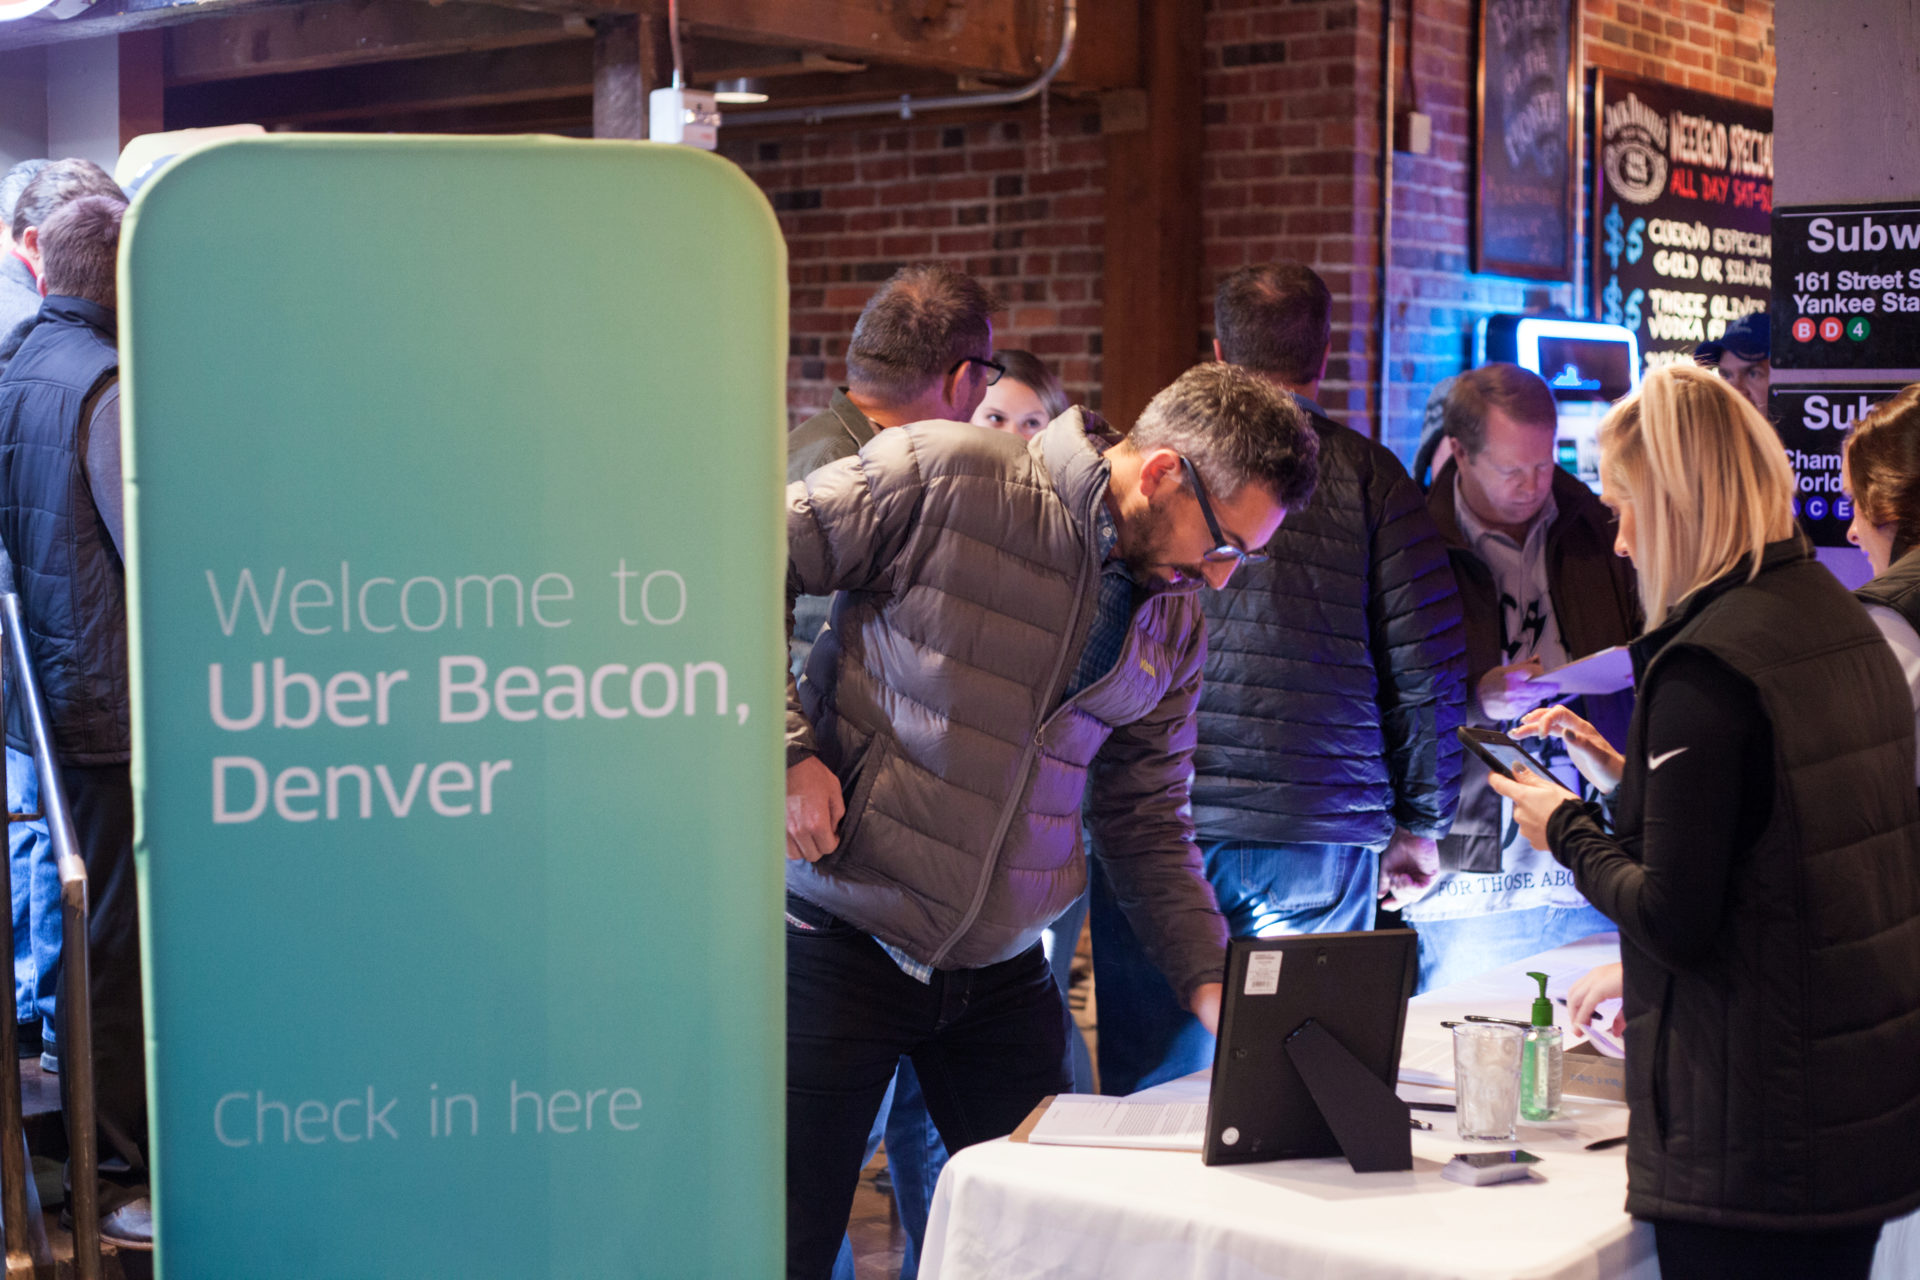 Uber Beacon Experiential Marketing Event Photography Agency Brand Photography Brand Videography  Experiential Activations O Hello Media